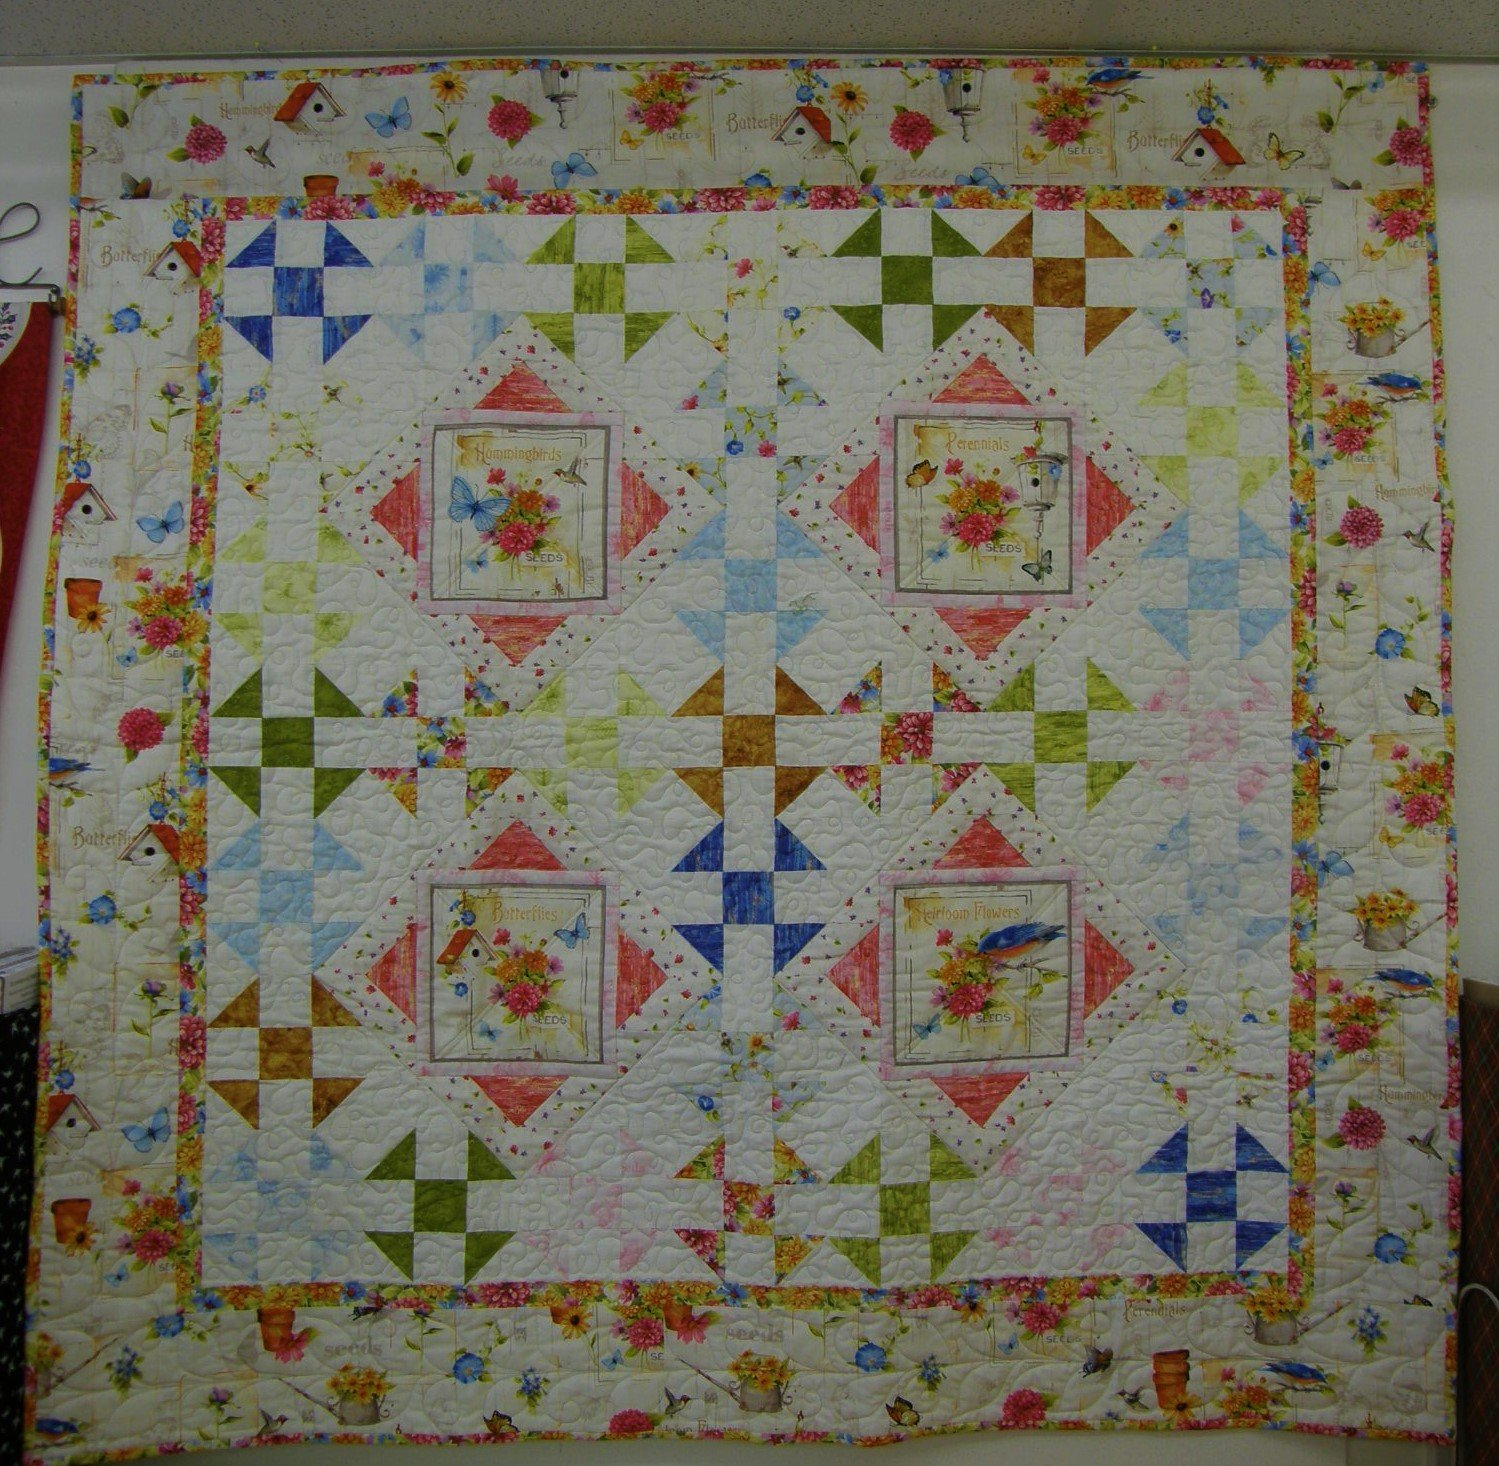 Adalee's Garden Finished Lap Quilt